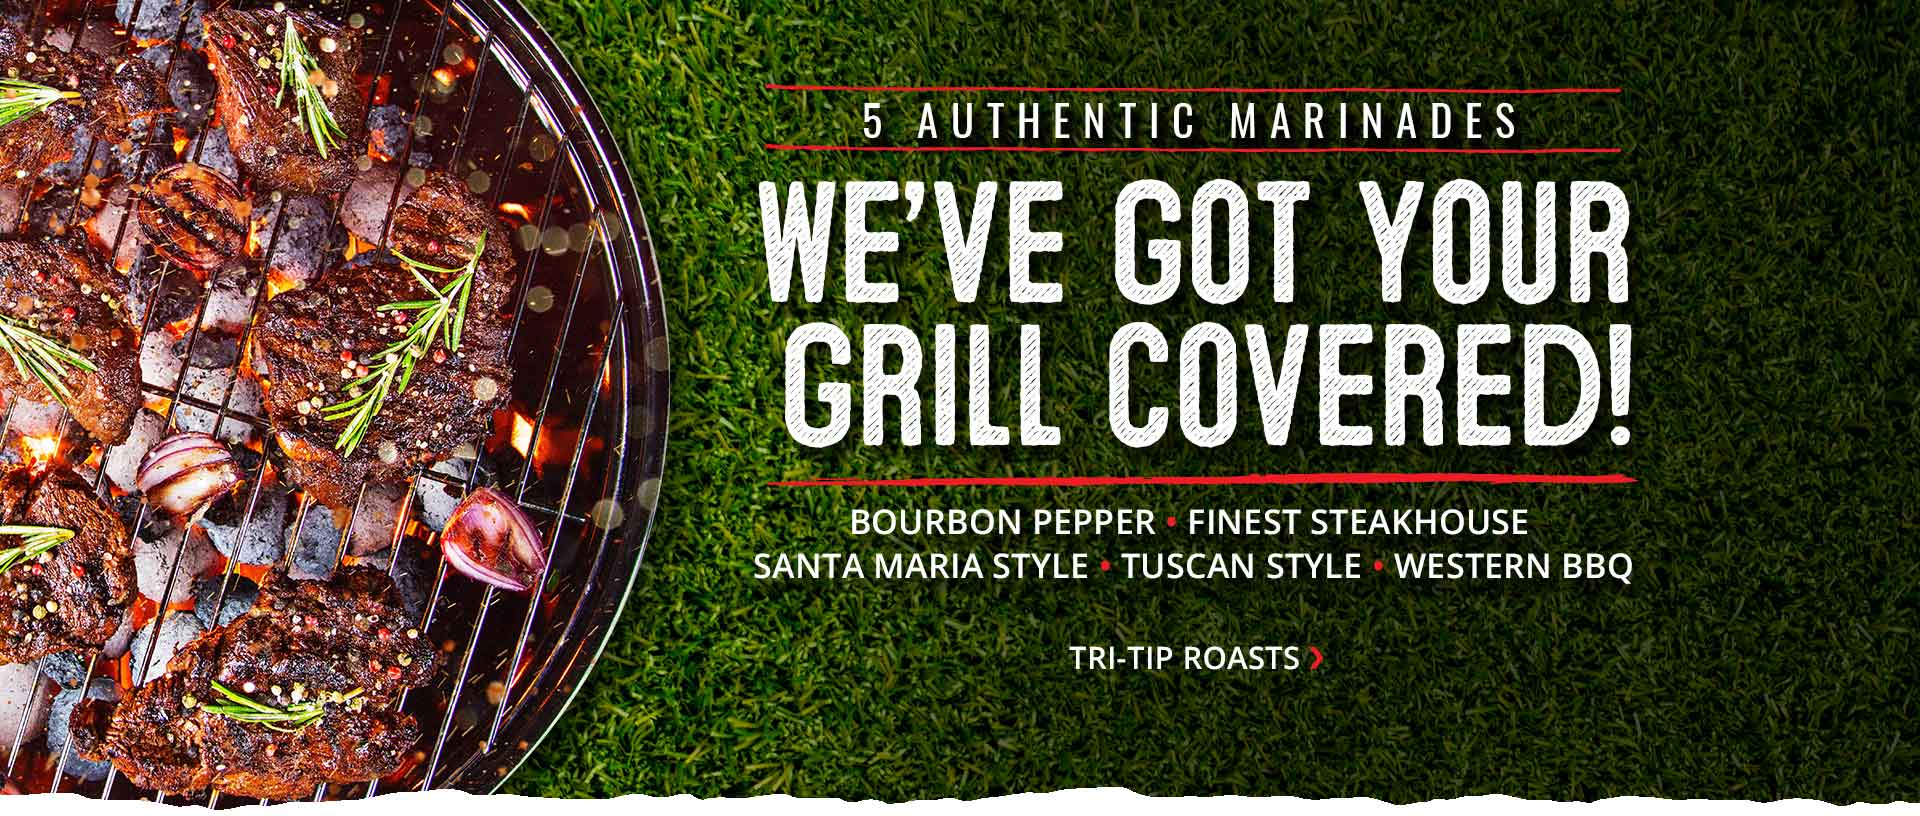 We've Got Your Grill Covered with these Authentic Marinade Tri-Tip Roasts